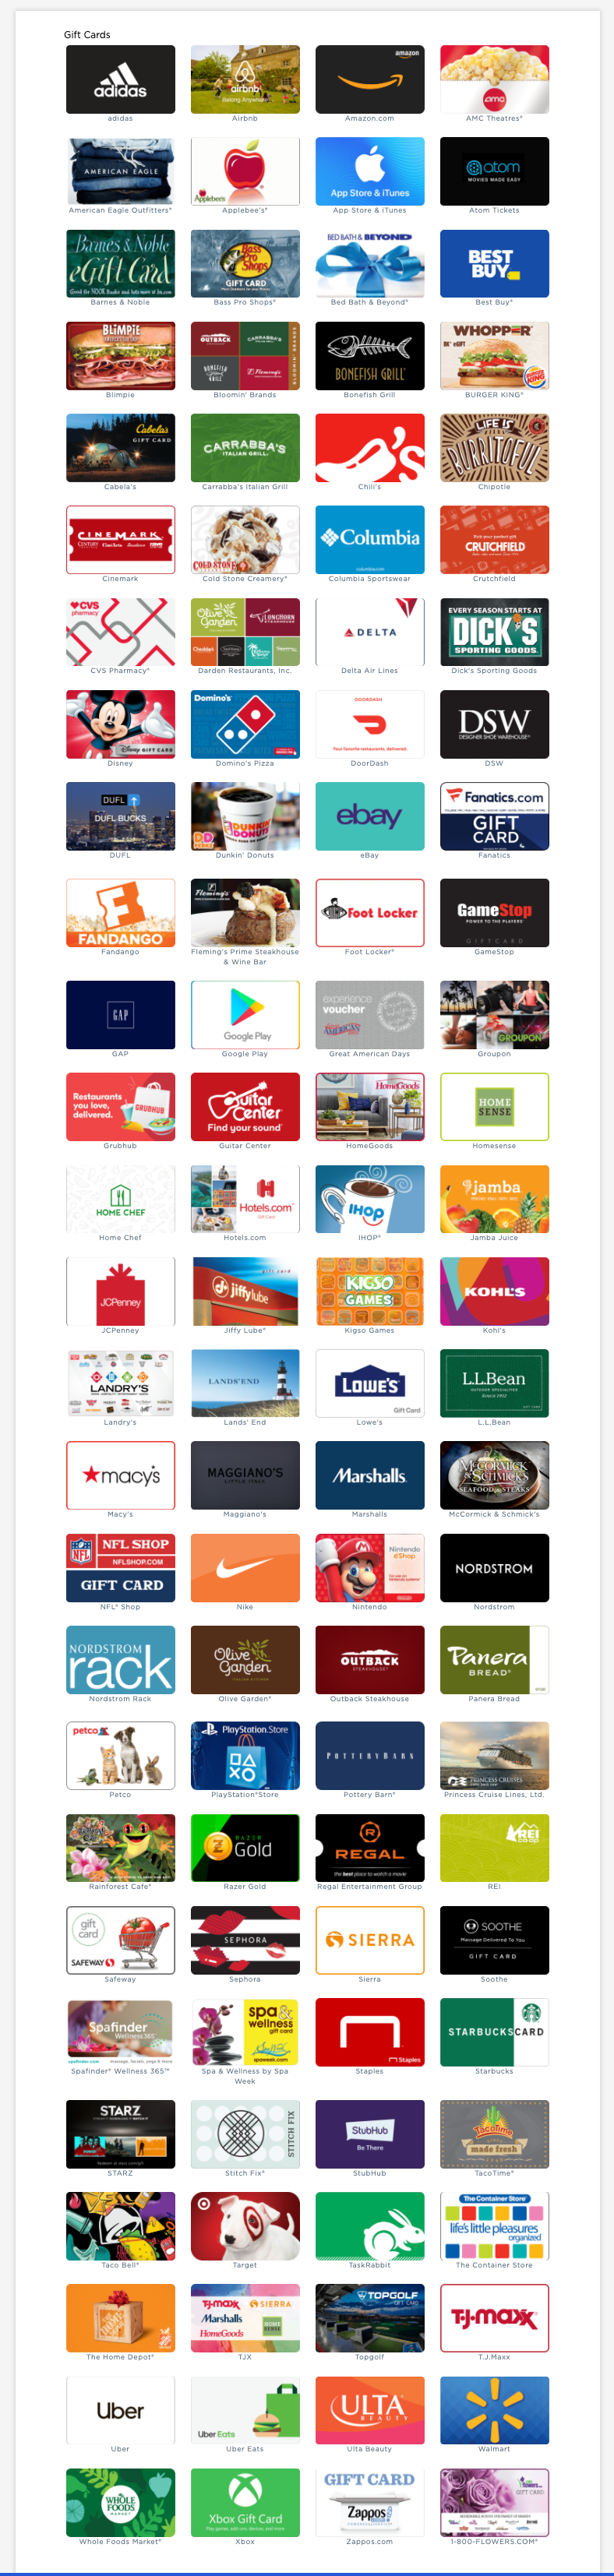 All the gift card choices available